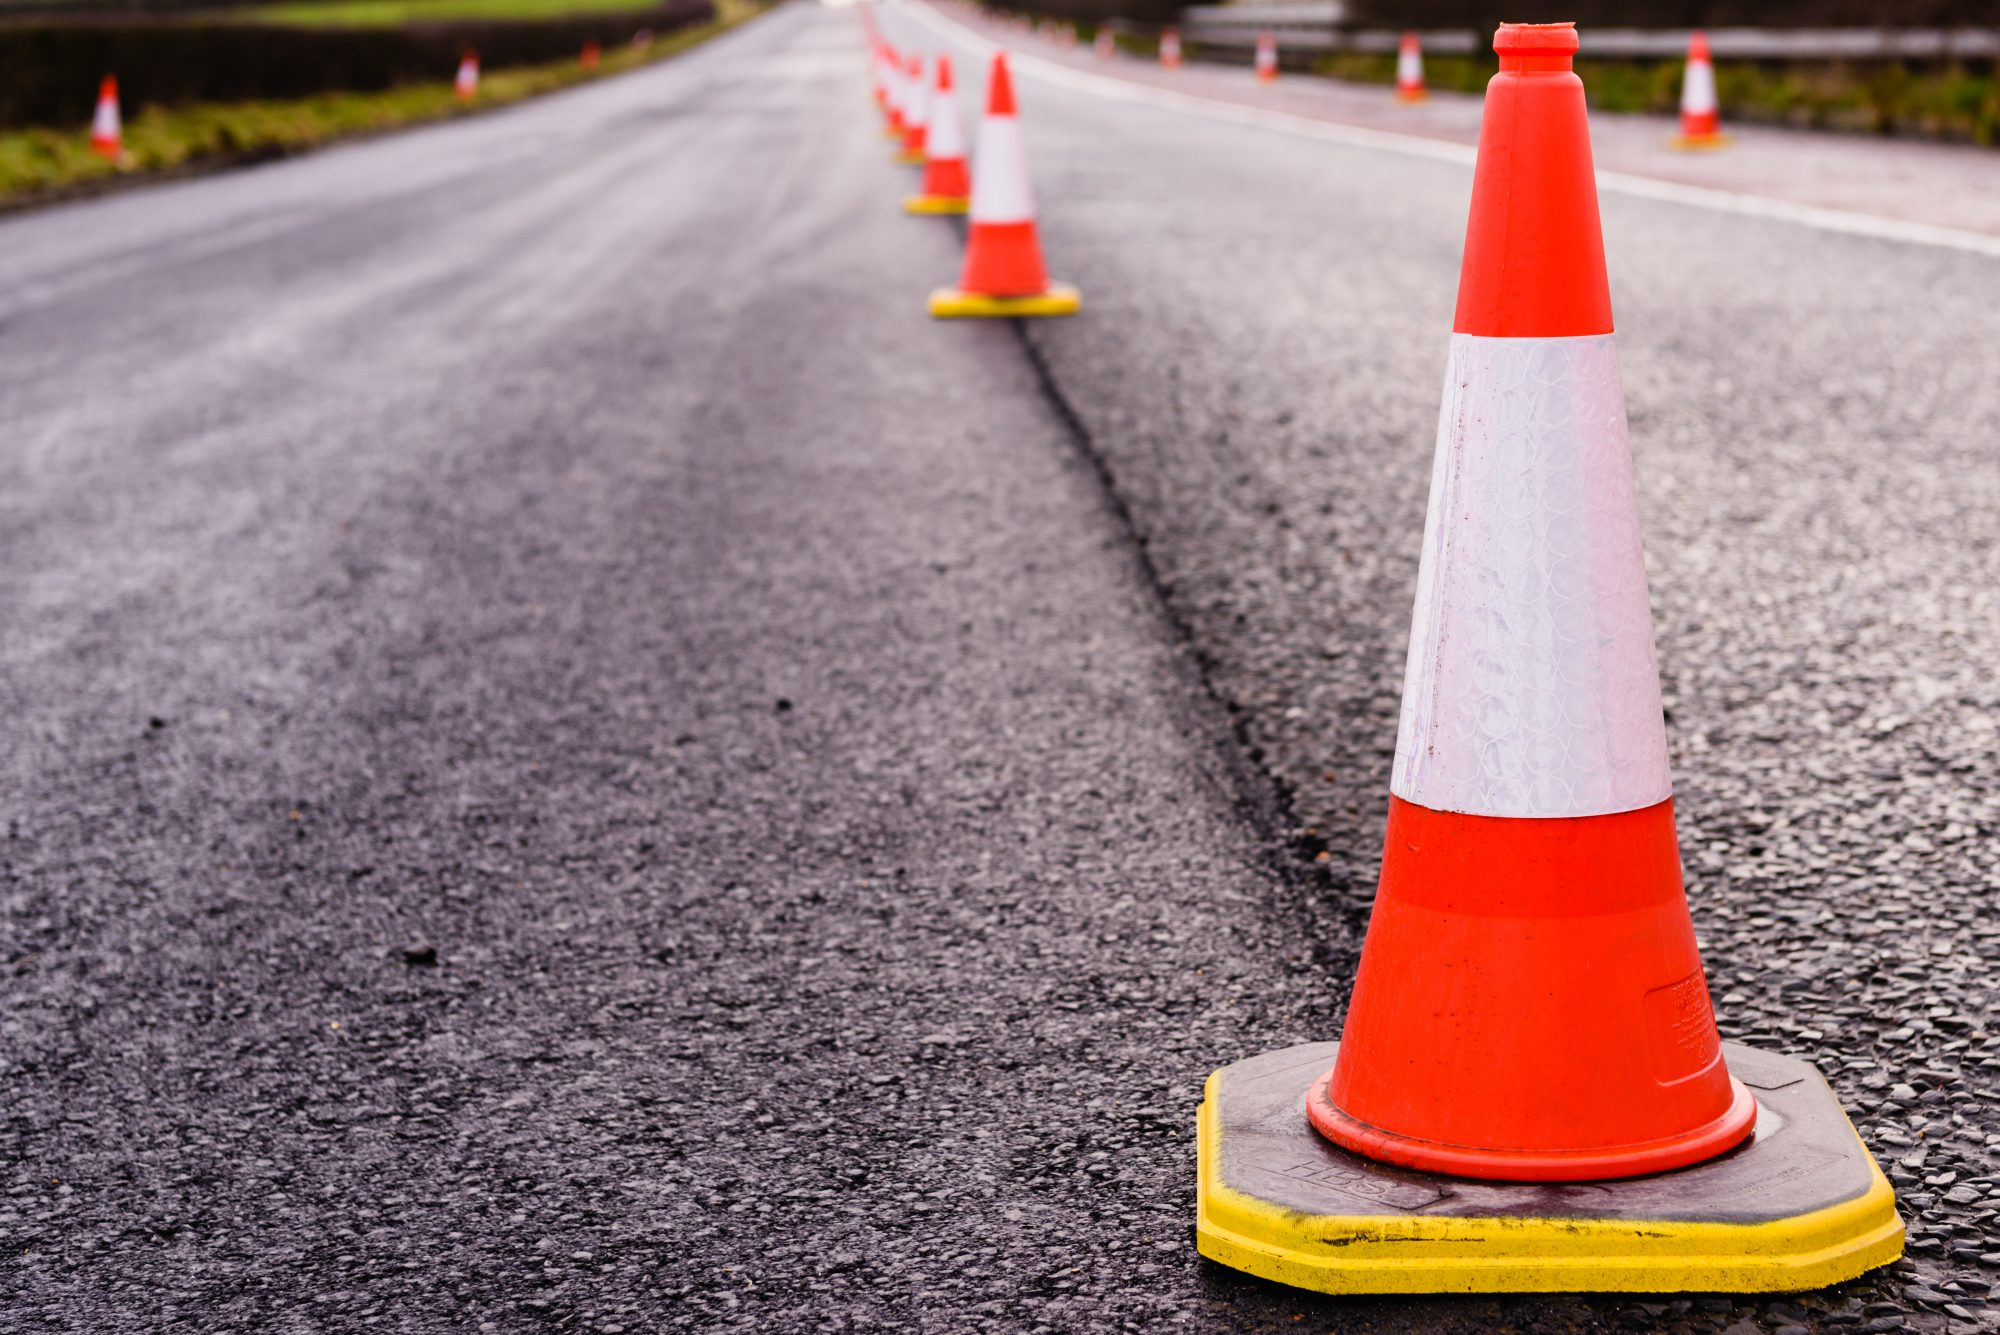 7 Costly Pitfalls of Asphalt Resurfacing and How to Avoid Them